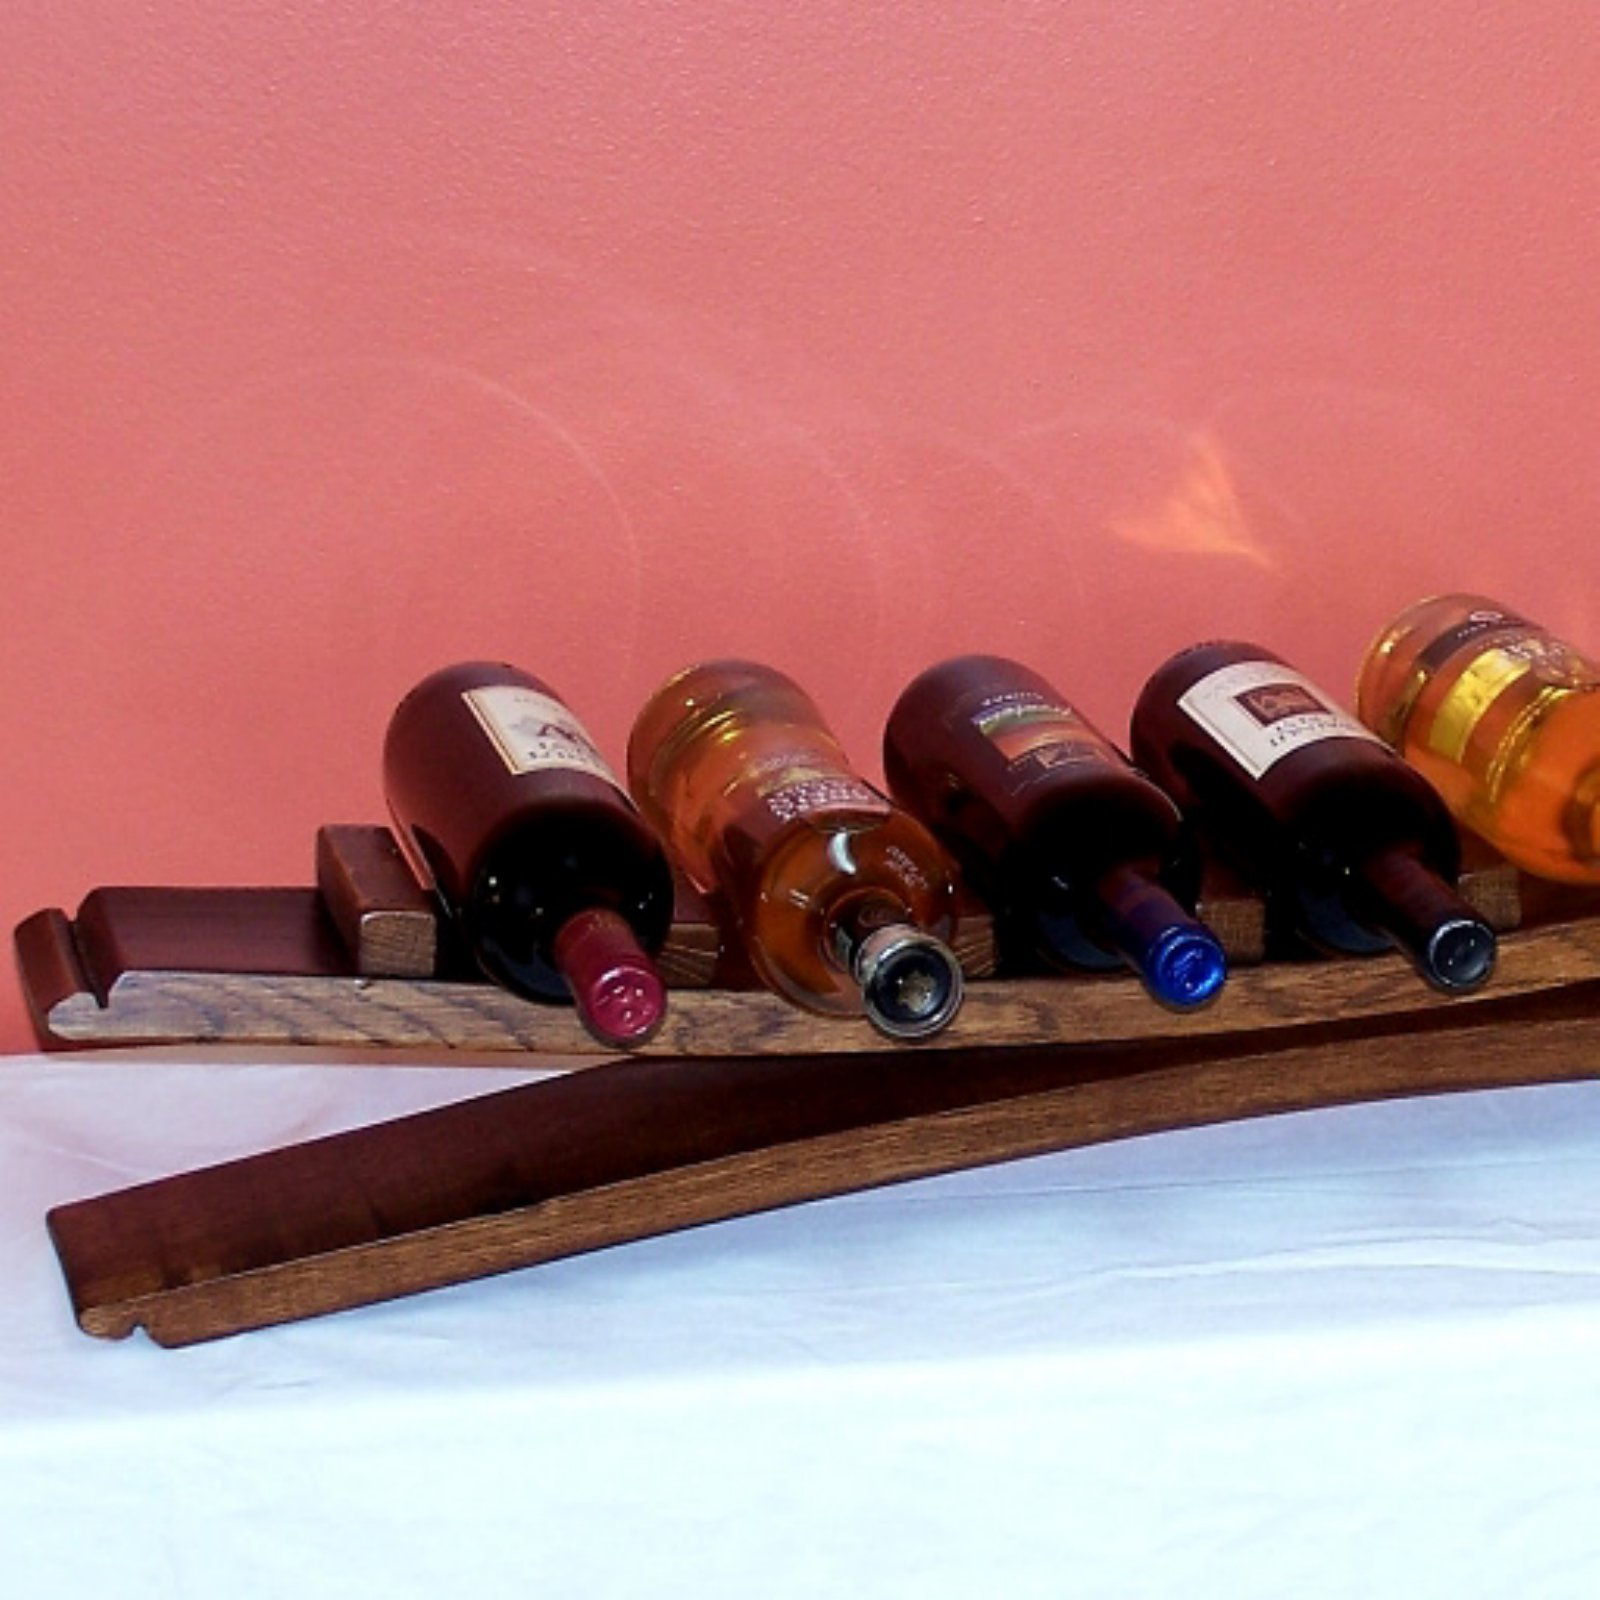 2 Day Designs Reclaimed Wine2Night 7 Bottle Stave Wine Bottle Display